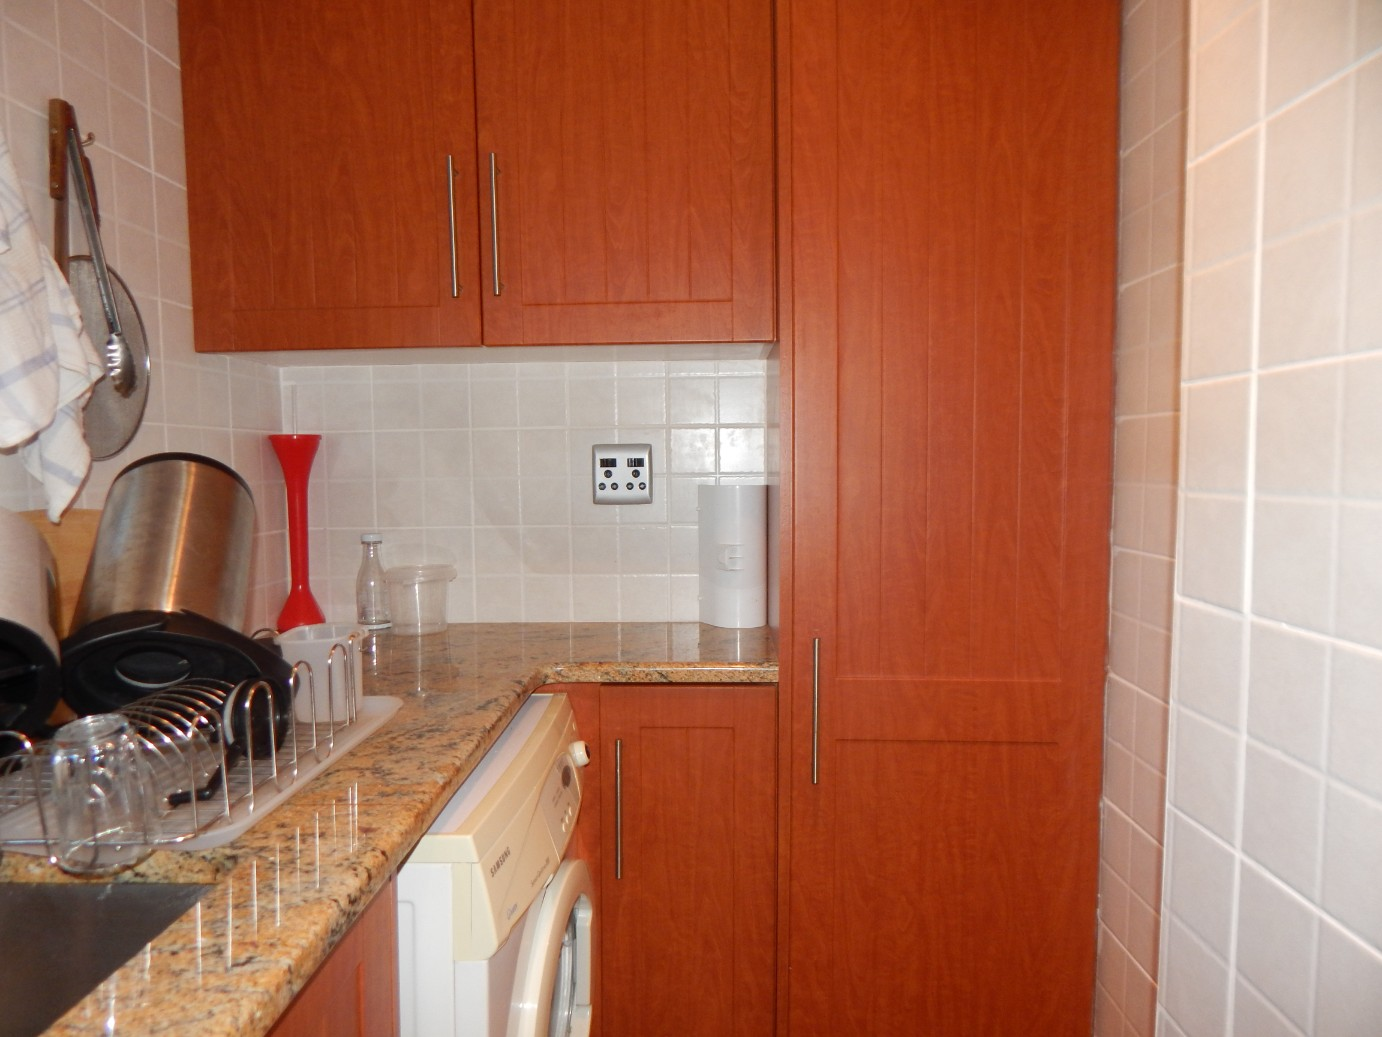 3 Bedroom Apartment for sale in Diaz Beach ENT0043723 : photo#11